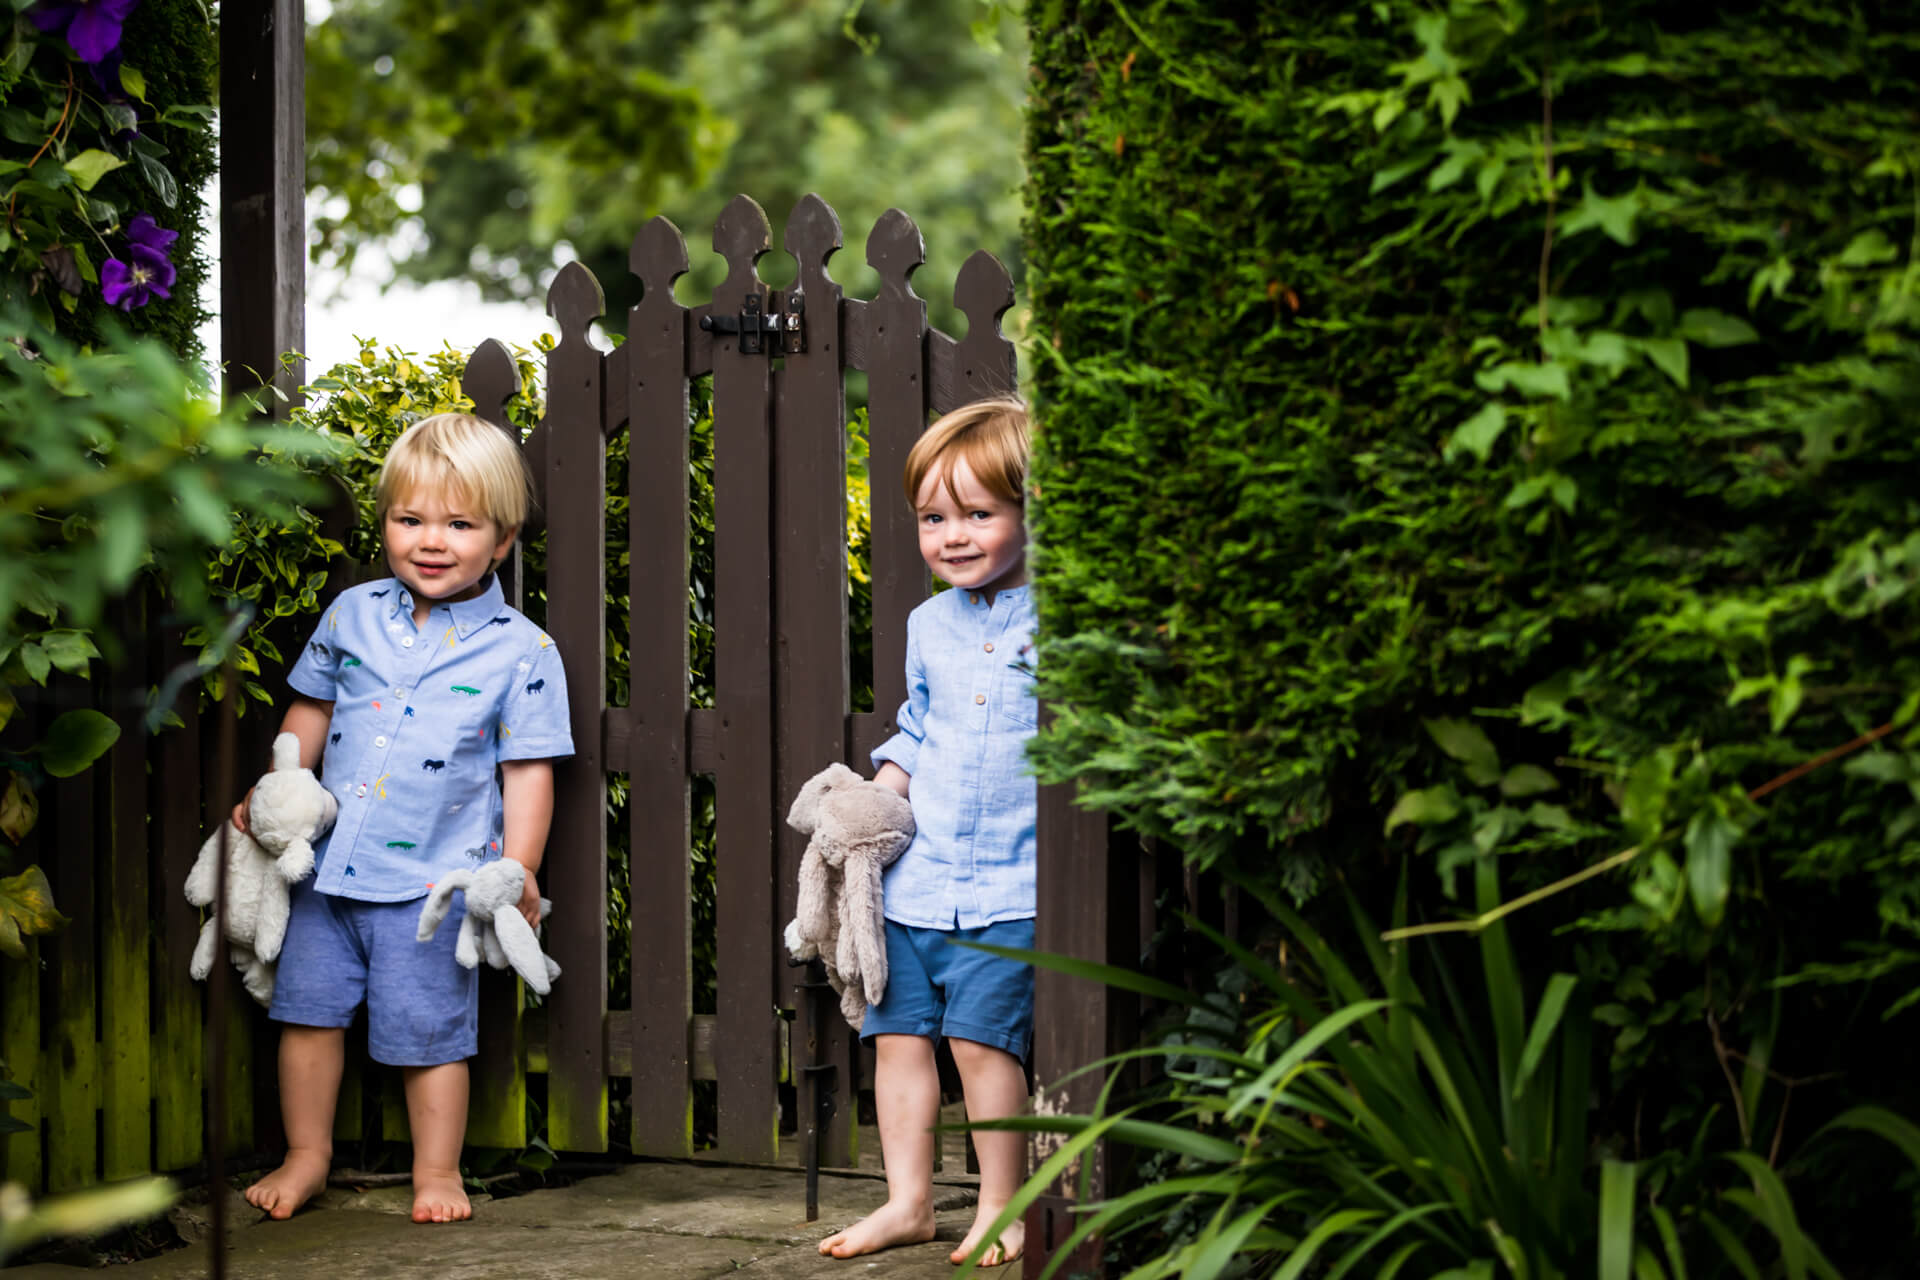 two boys standing by a garden gate holding teddy bears